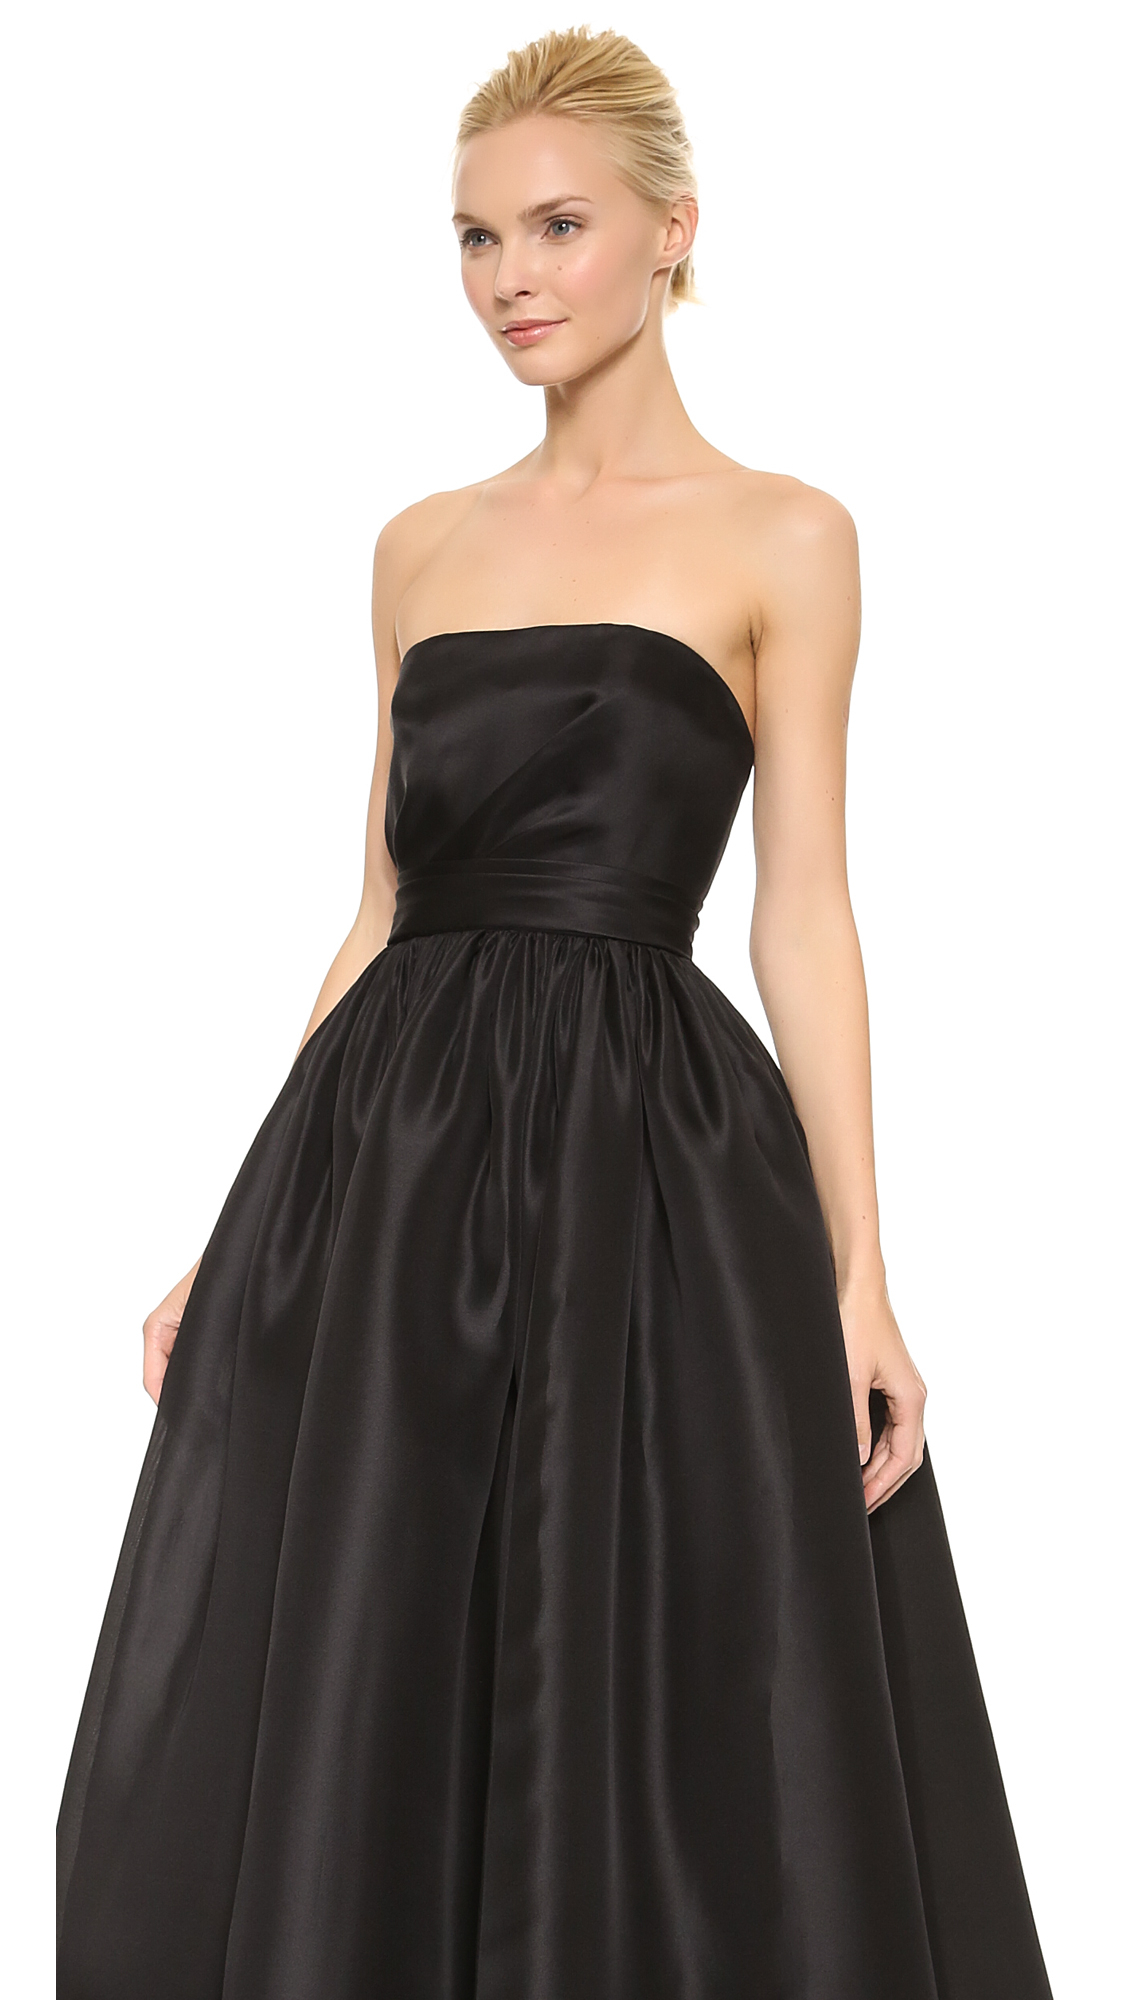 Lyst - Reem Acra Draped Bodice Ball Gown Black in Black